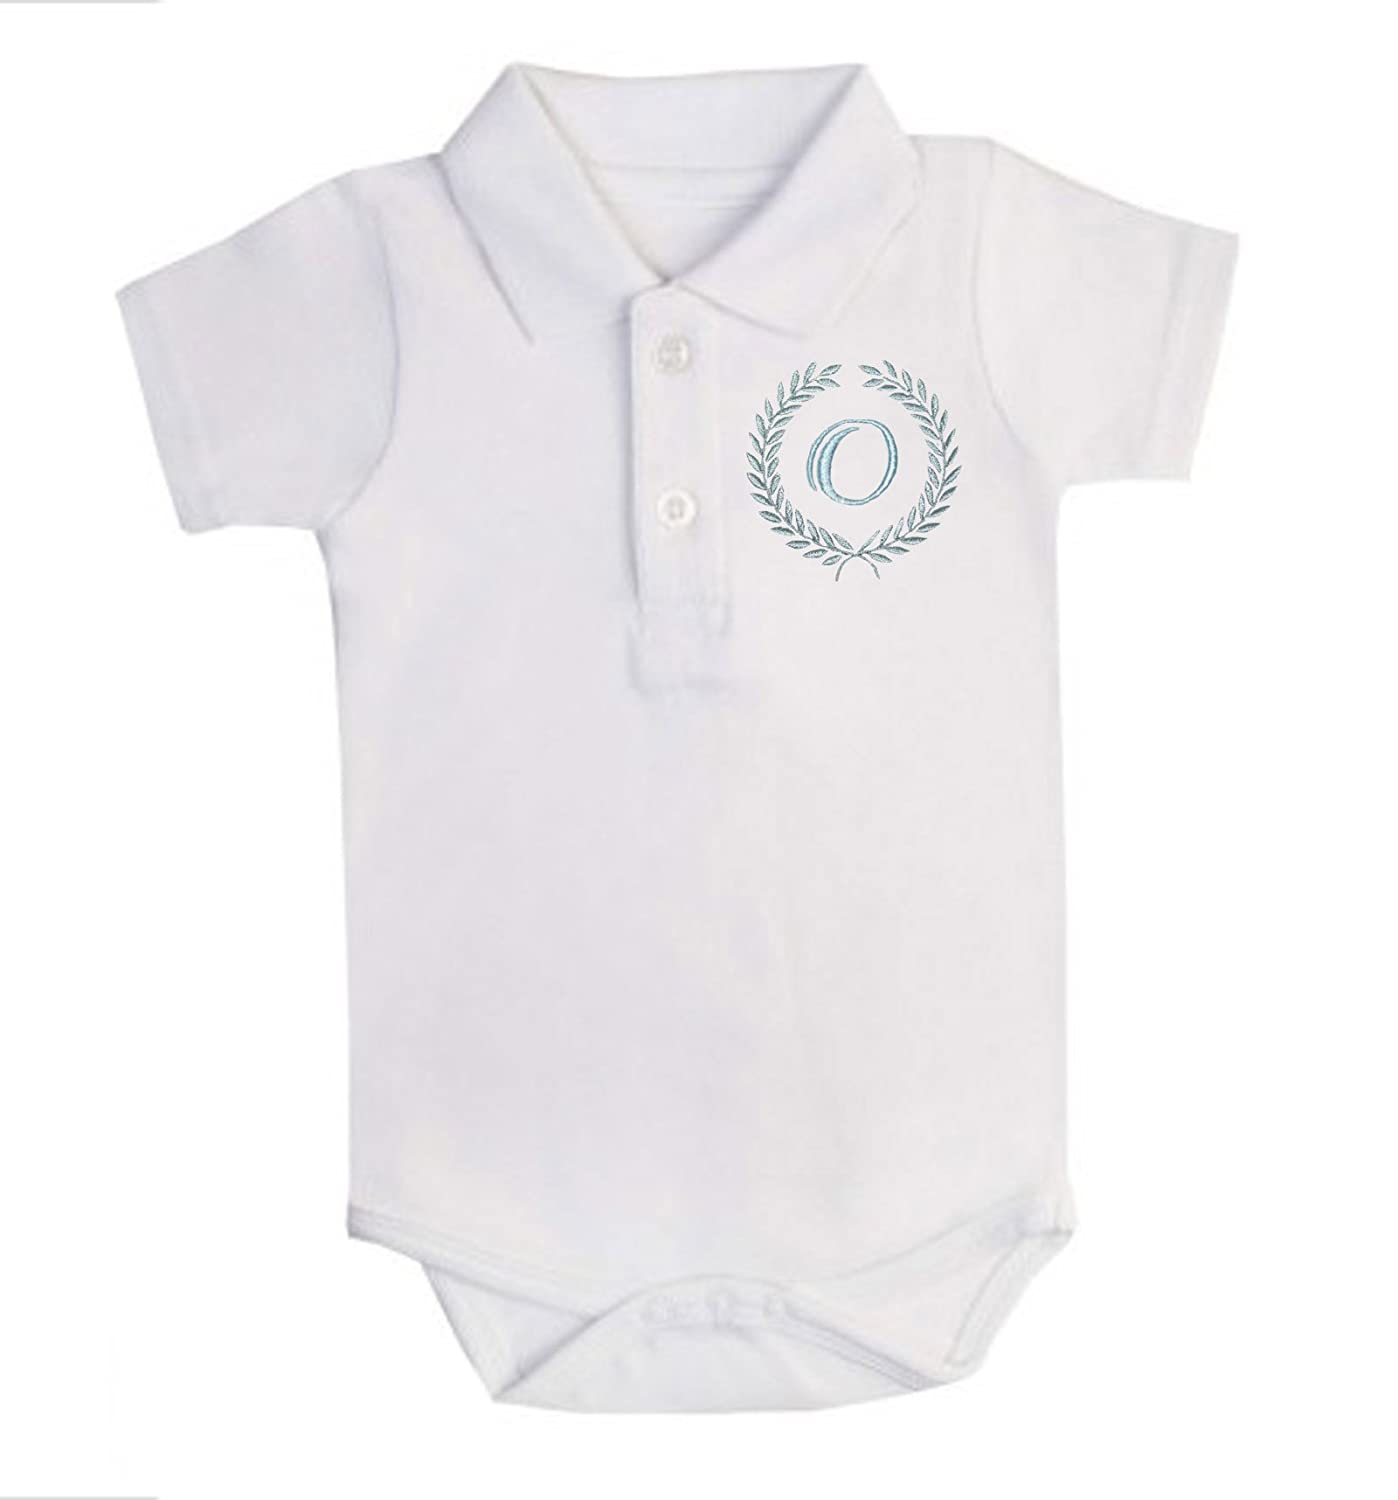 Sew Sew Special Boy/'s Laurel Monogram Short Sleeve Bodysuit Personalised with The Name of Your Choice First Name Only .